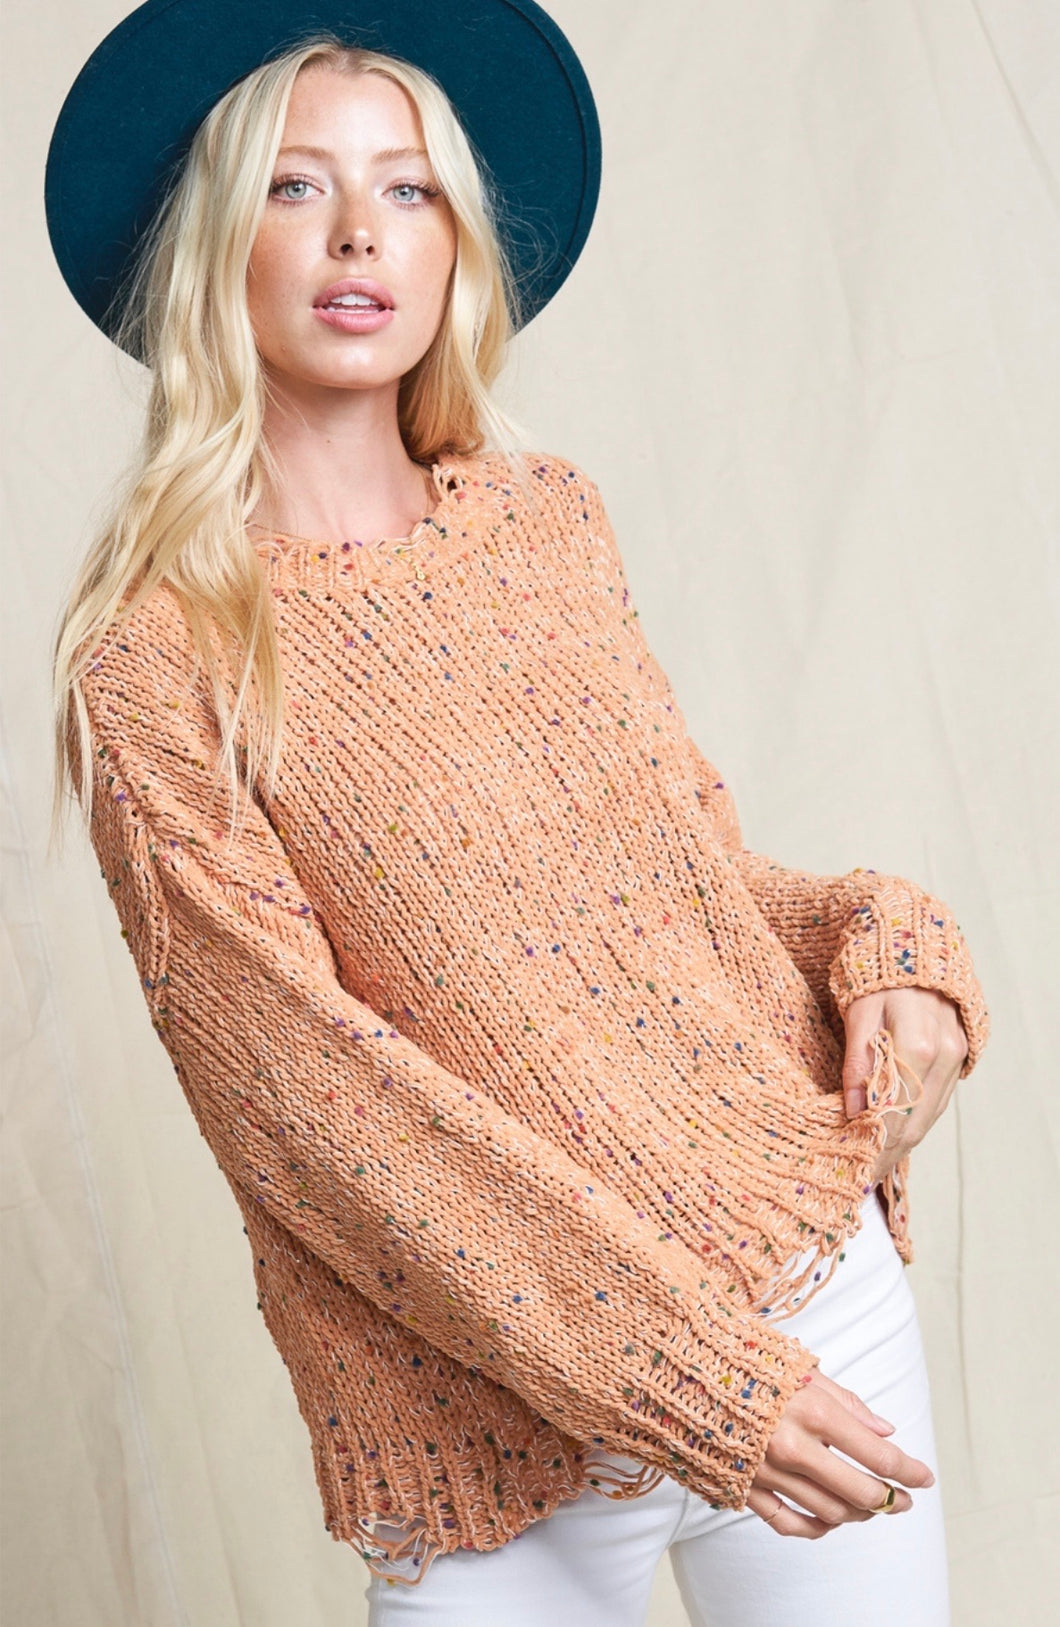 681 - Sedalia Speckled Sweater